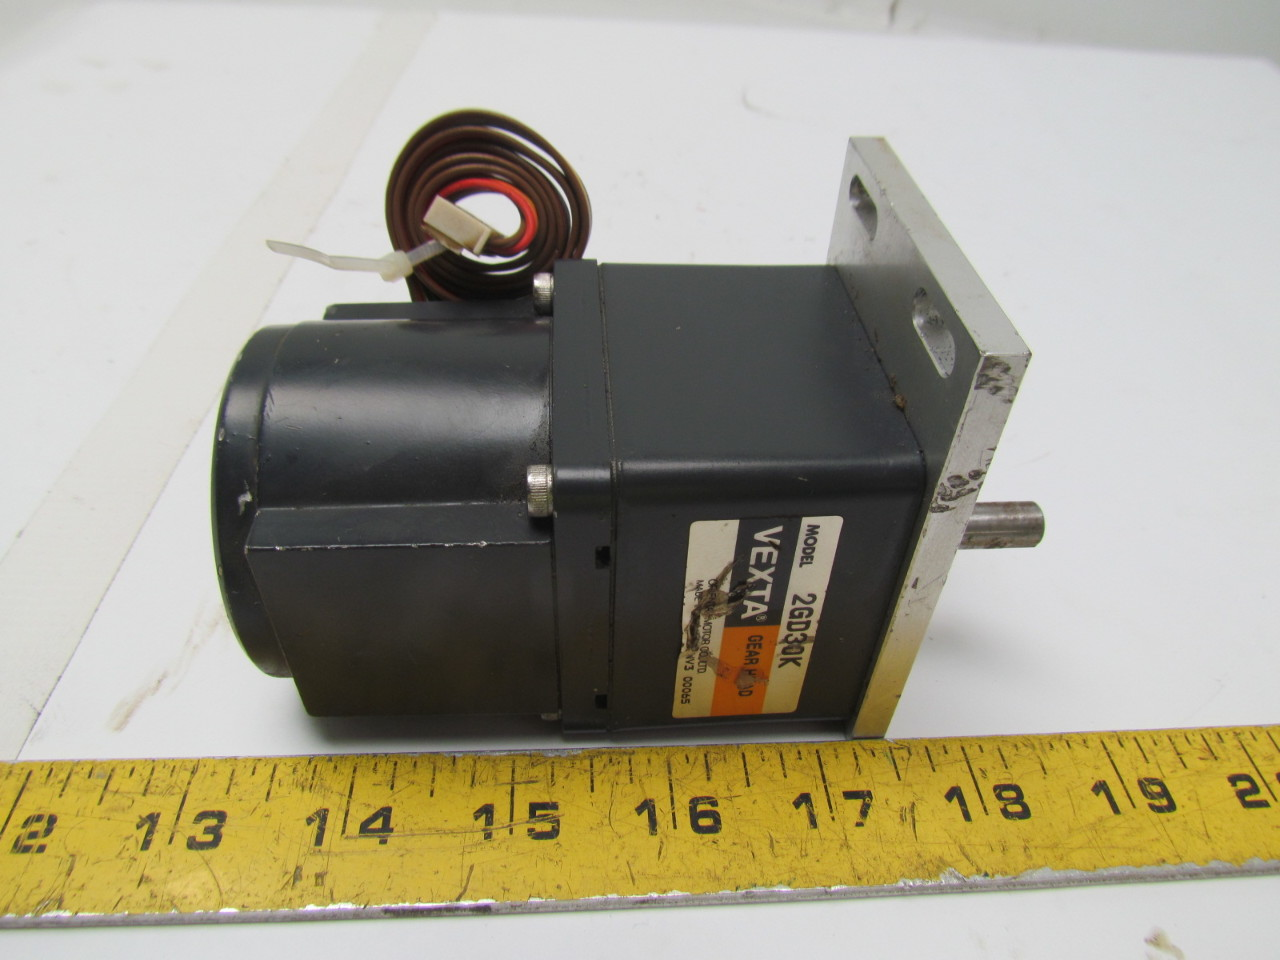 Vexta bl215gd af brushless dc motor 3000rpm 15w w 2gd30k for Brushless dc gear motor